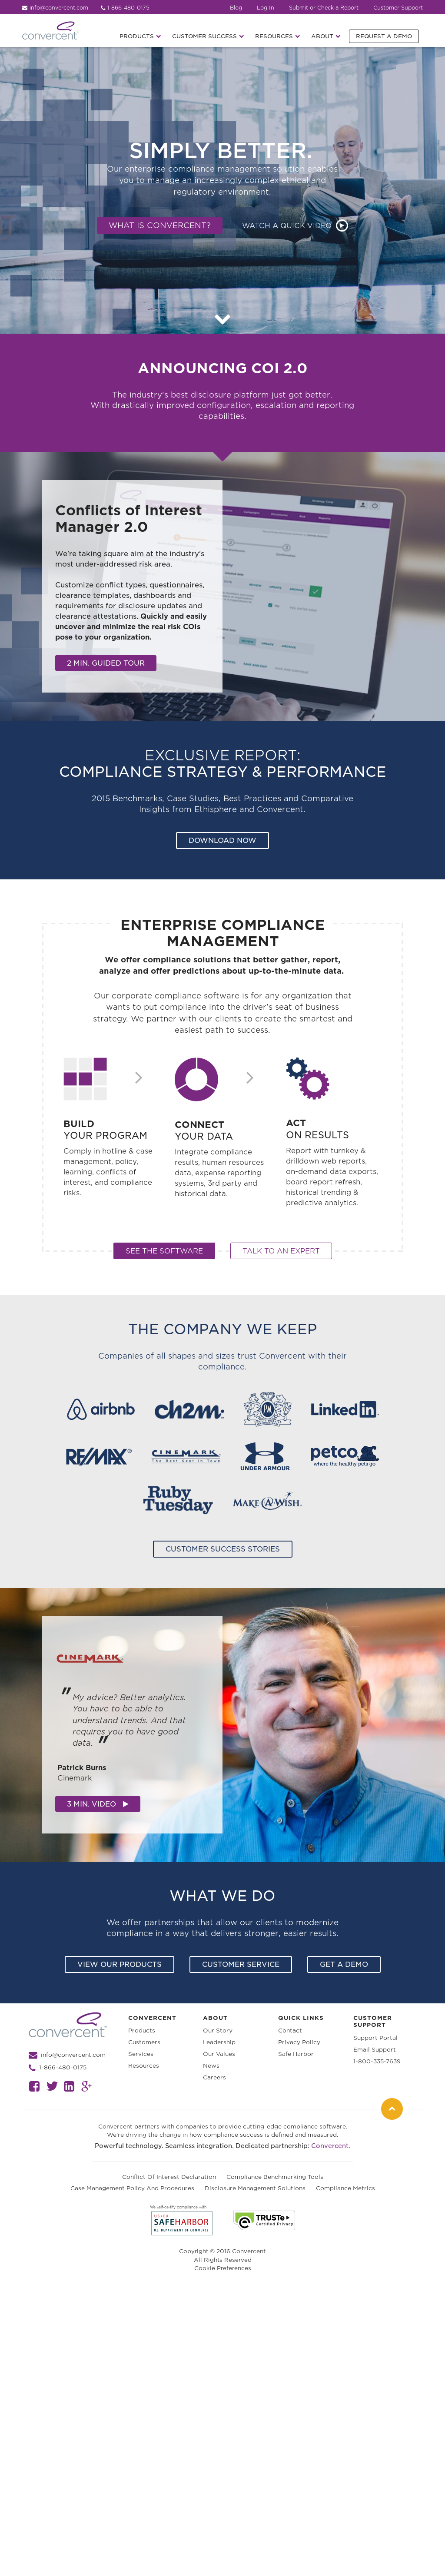 Convercent Competitors, Revenue and Employees - Owler